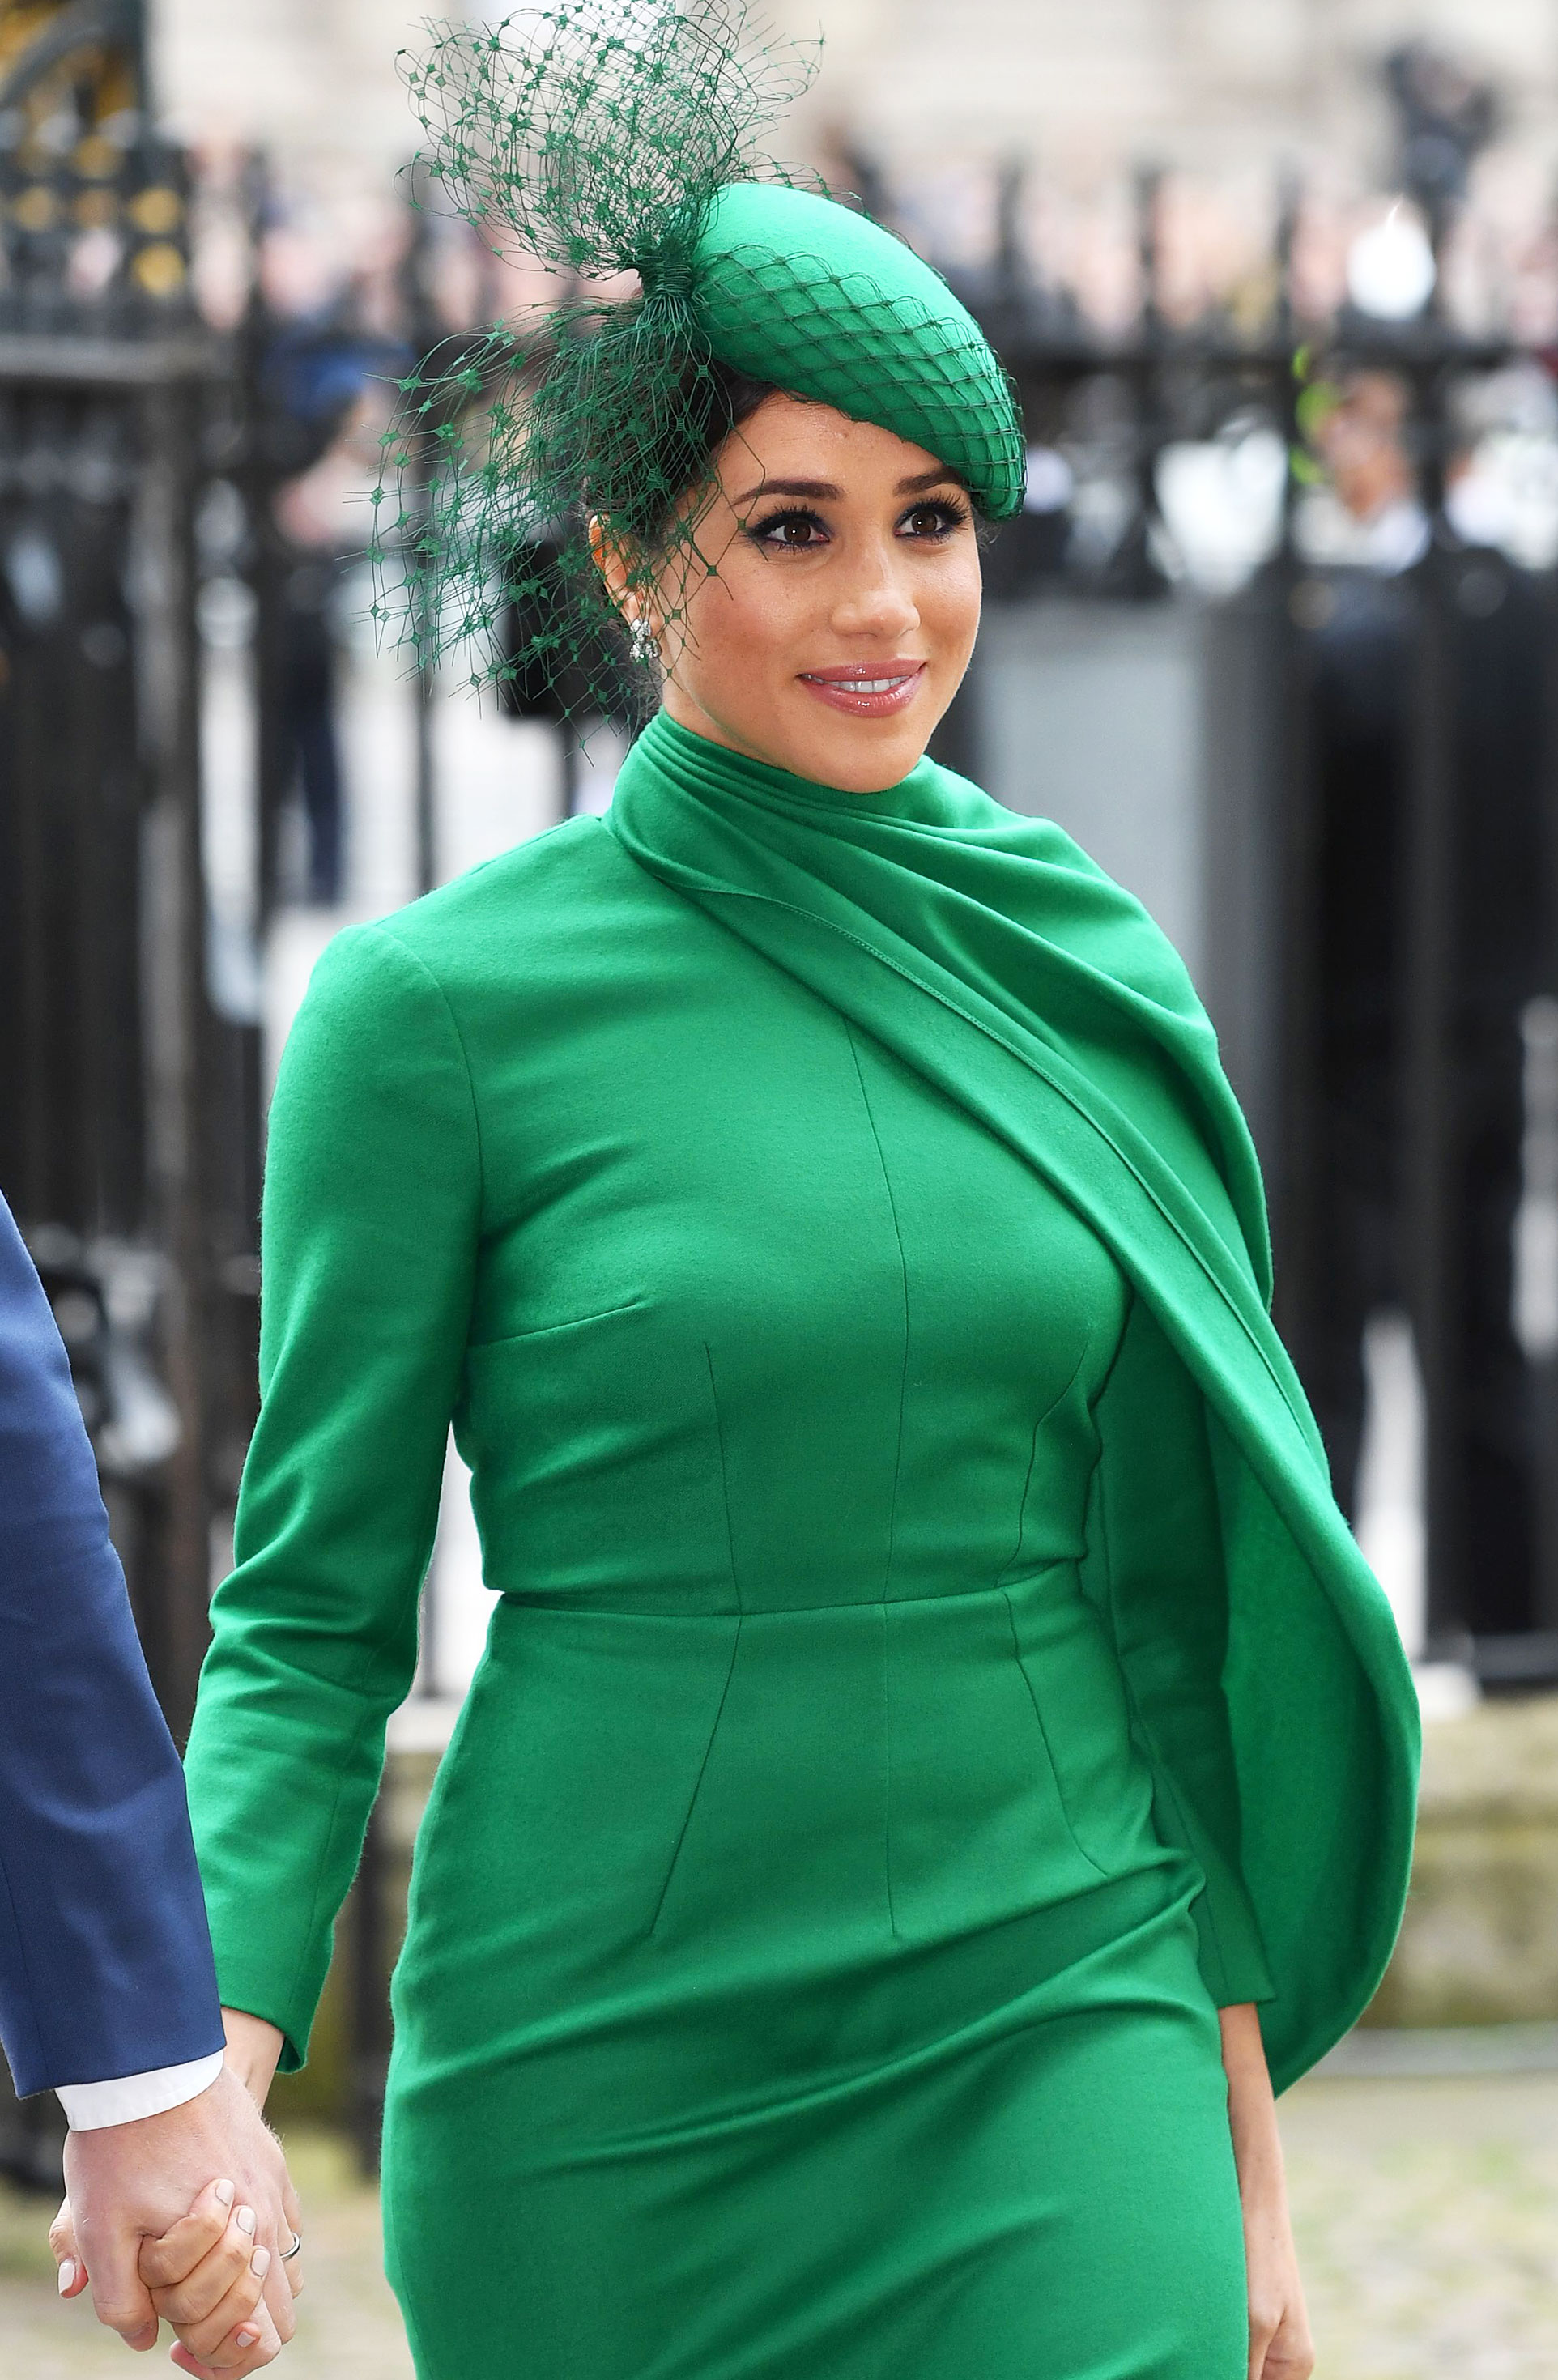 meghan markle s fashion after leaving royal duties post megxit style fashion after leaving royal duties